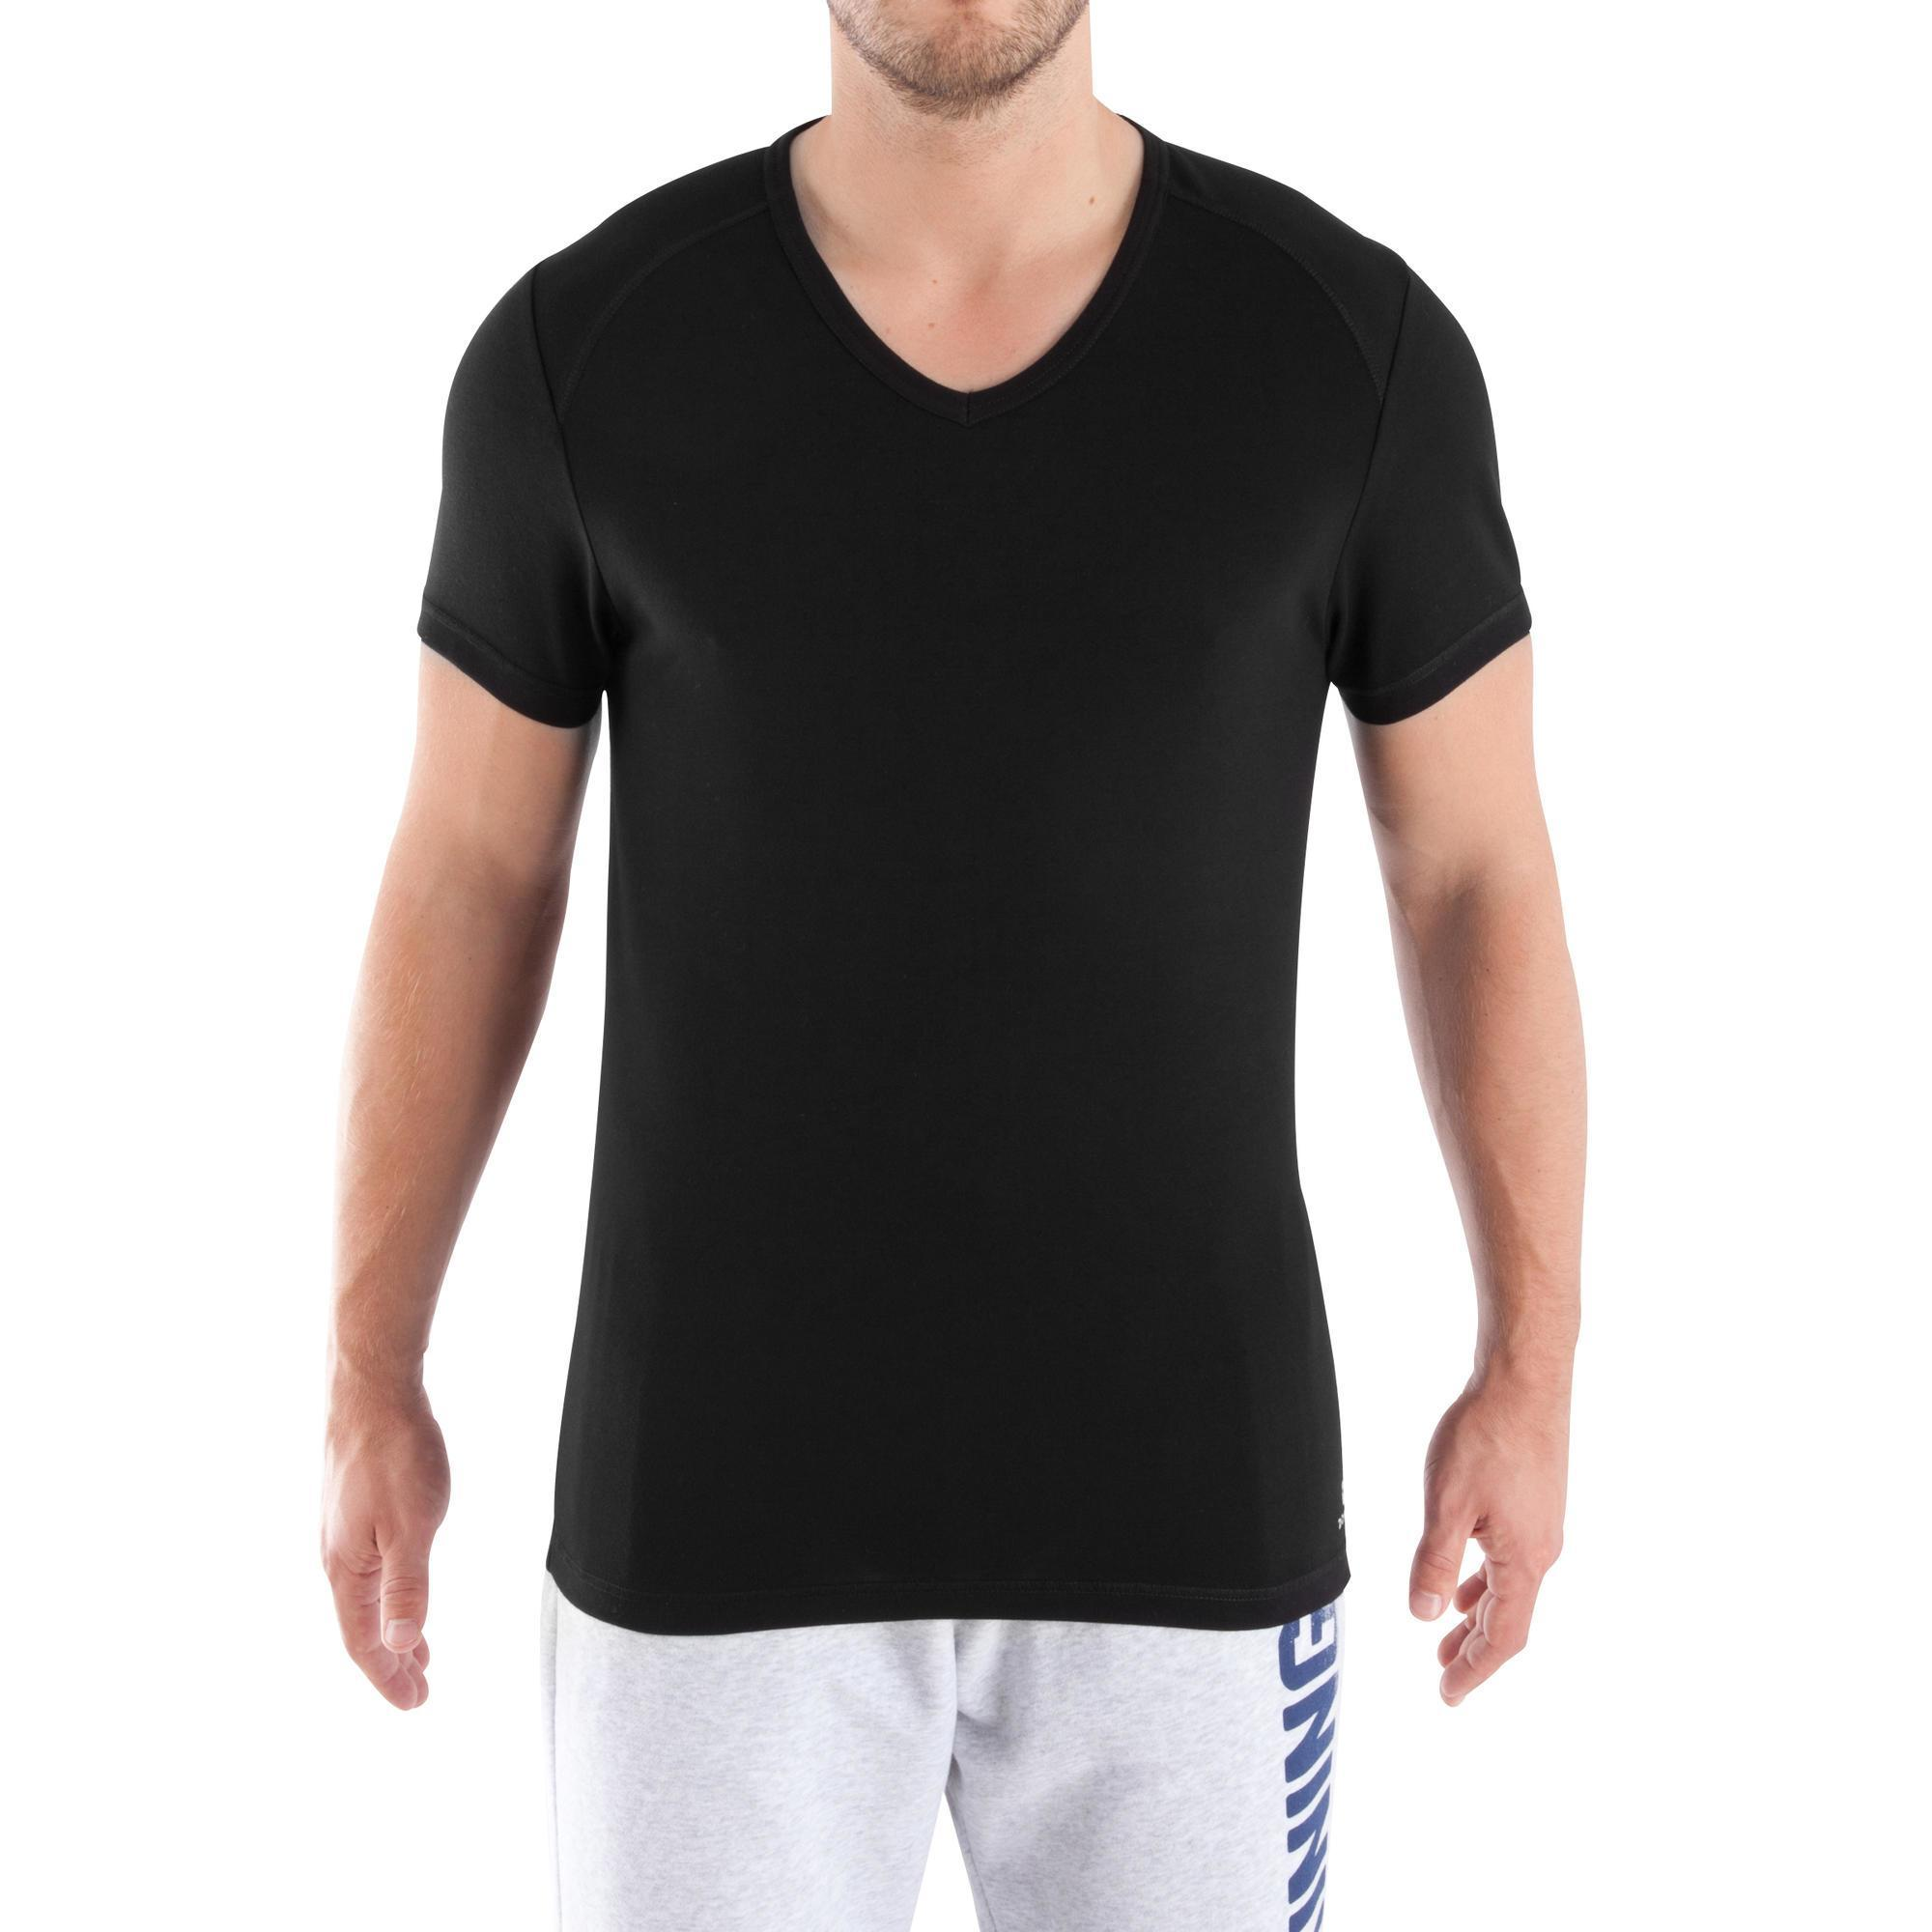 tee shirt col v dry skin musculation homme noir domyos by decathlon. Black Bedroom Furniture Sets. Home Design Ideas